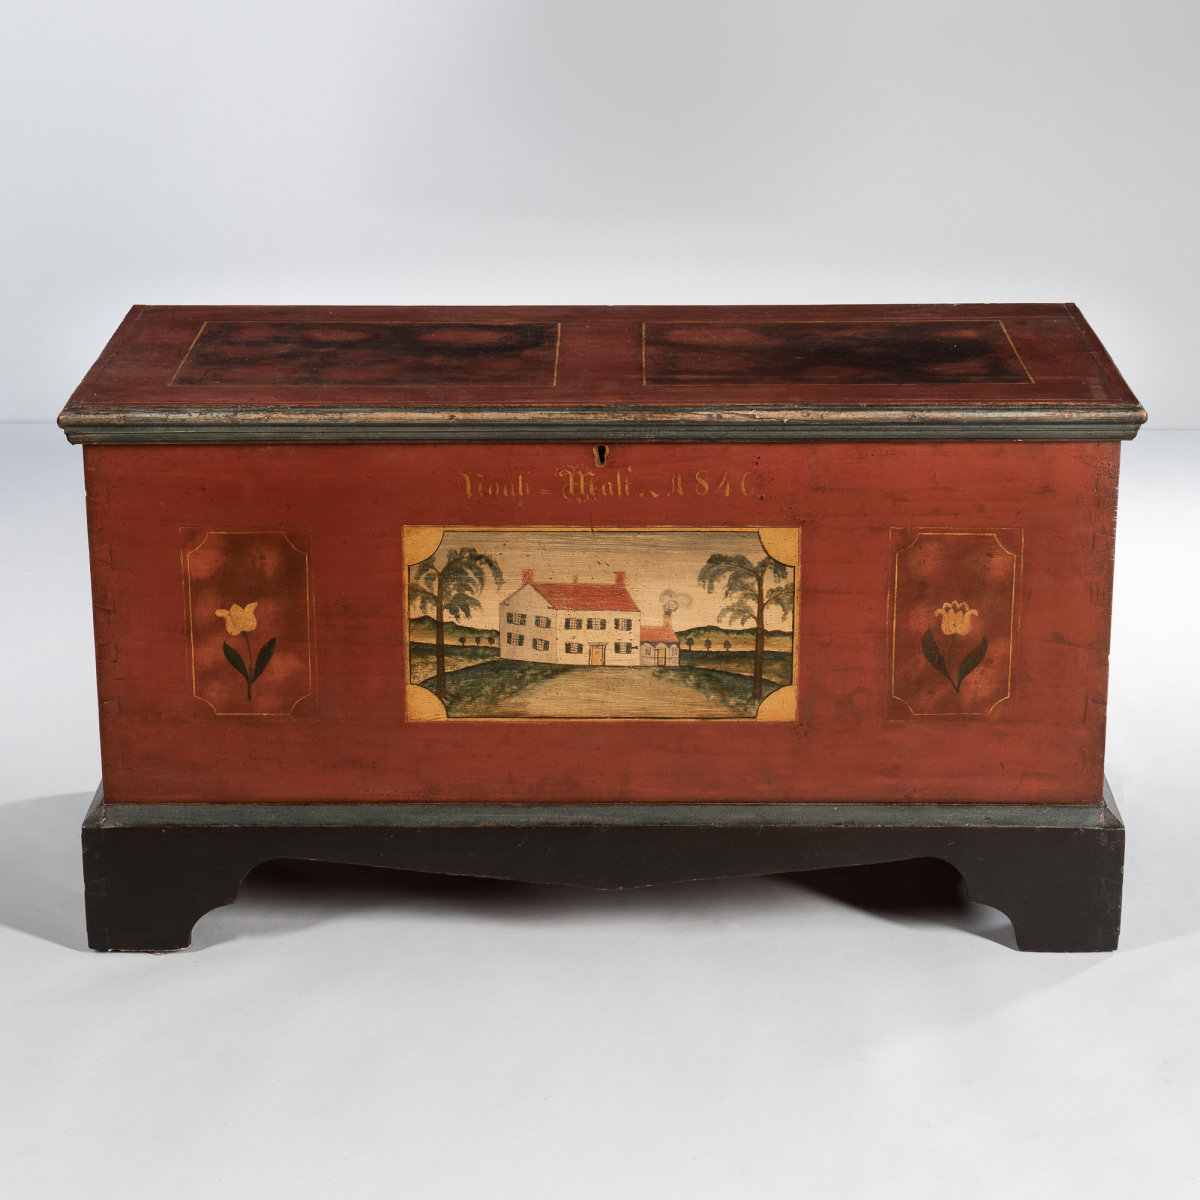 "Paint-decorated Dower Chest ""Noah Mali,"" Sugar Creek Township, Tuscarawas County, Ohio, 1846"